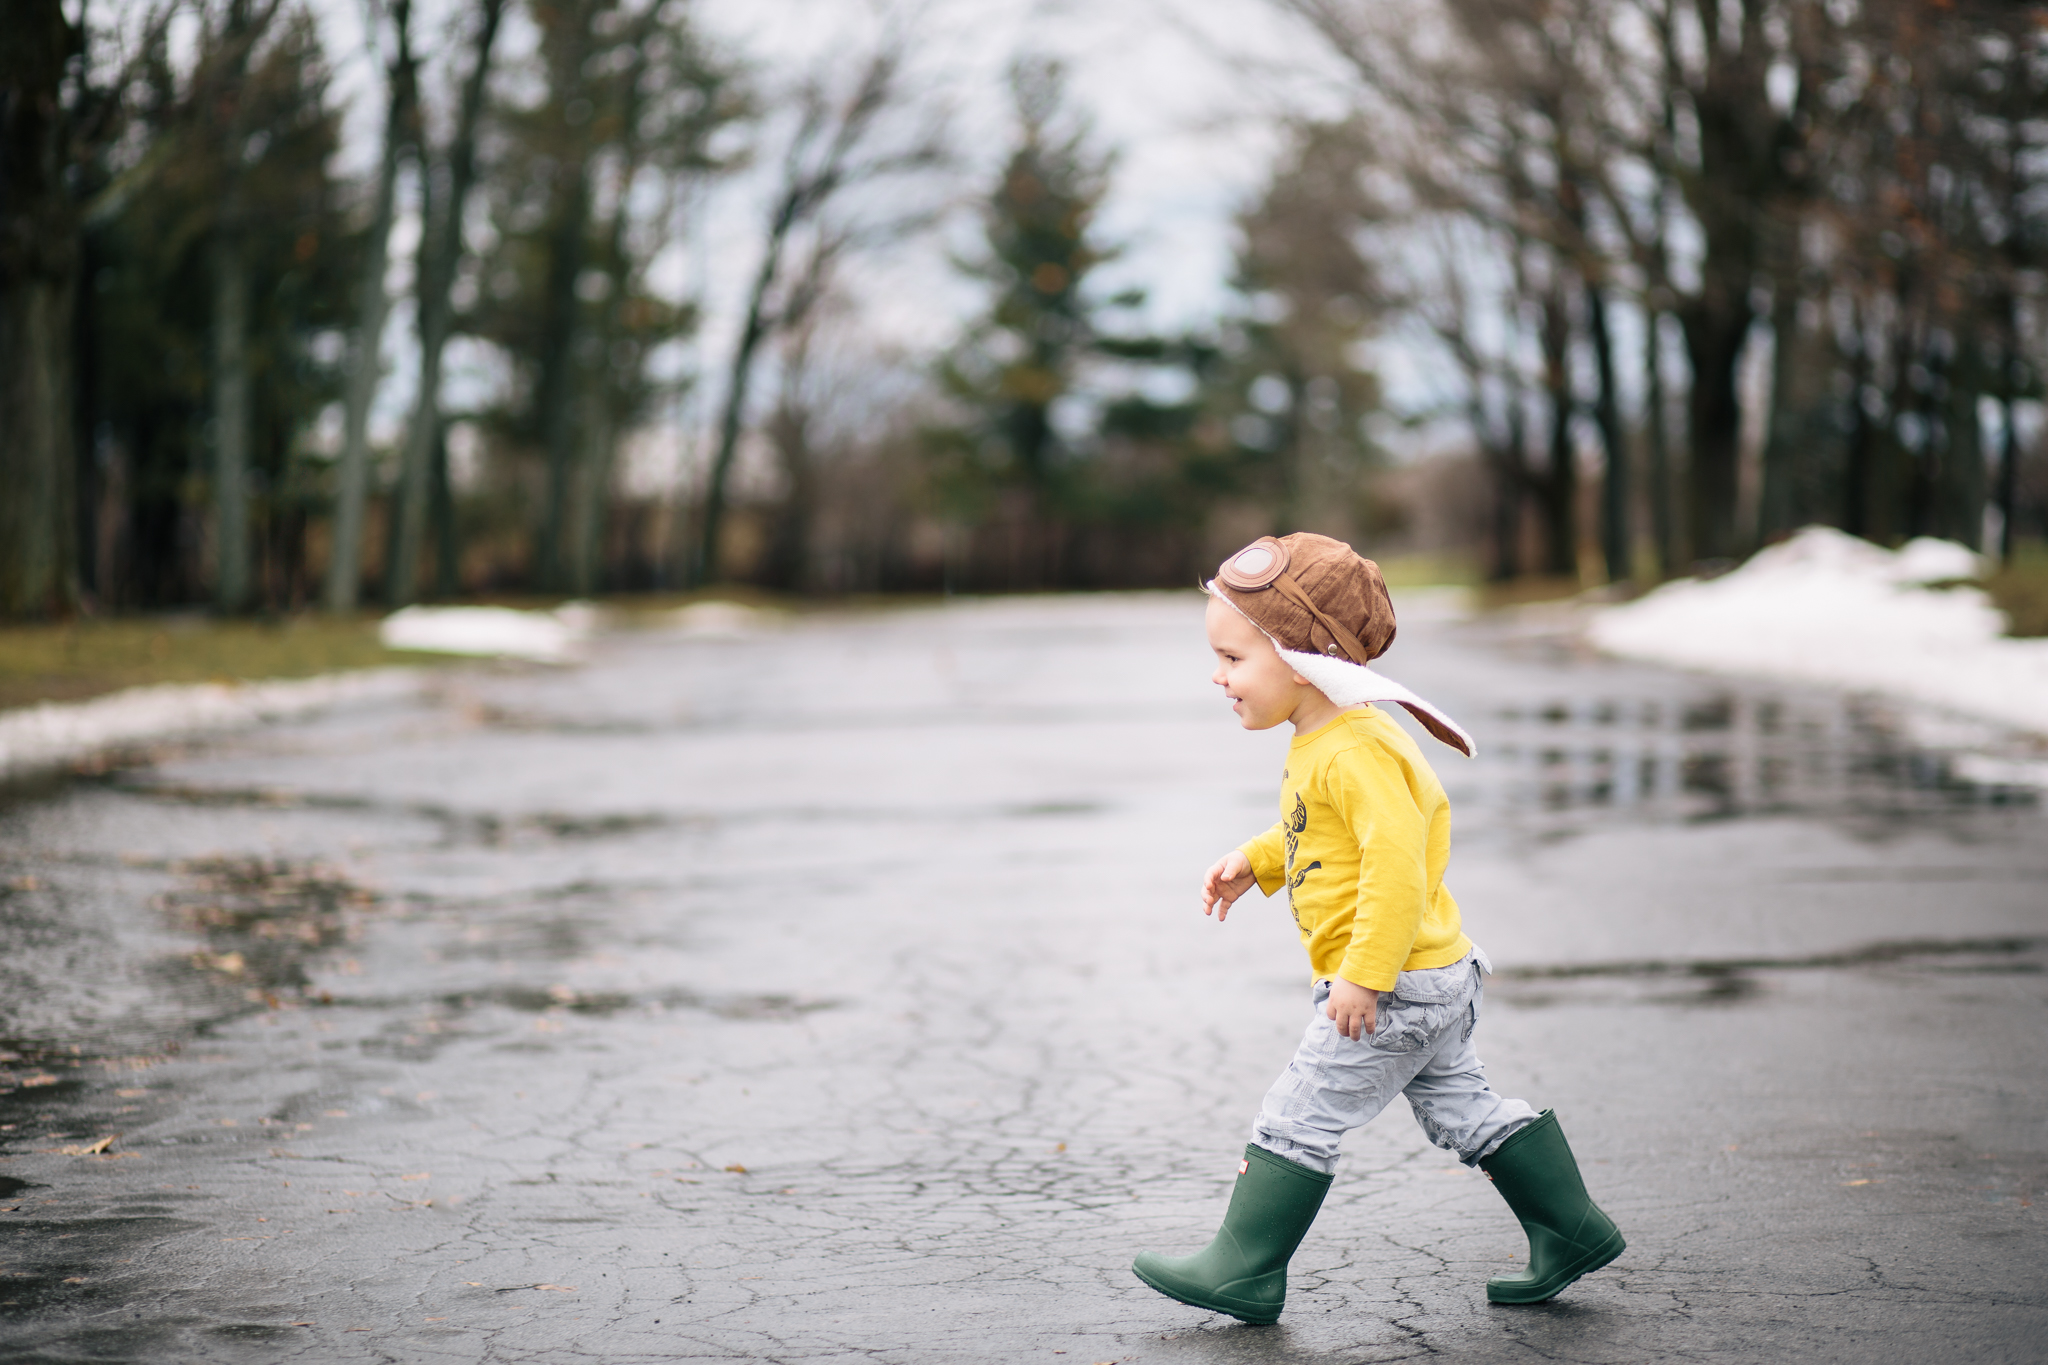 34/366 | Puddle jumpin'.